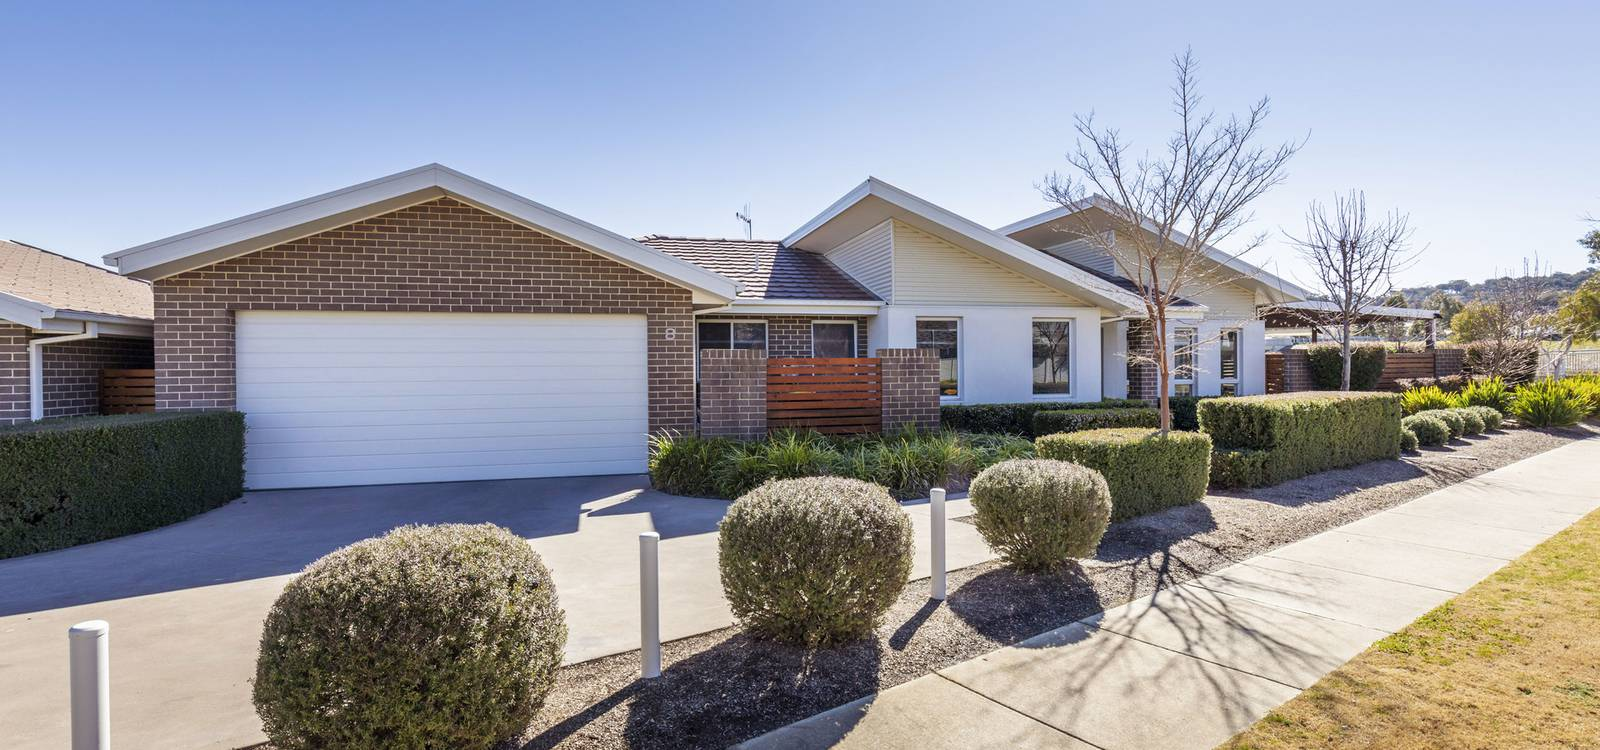 8/35 Laird Crescent FORDE, ACT 2914 - photo 1